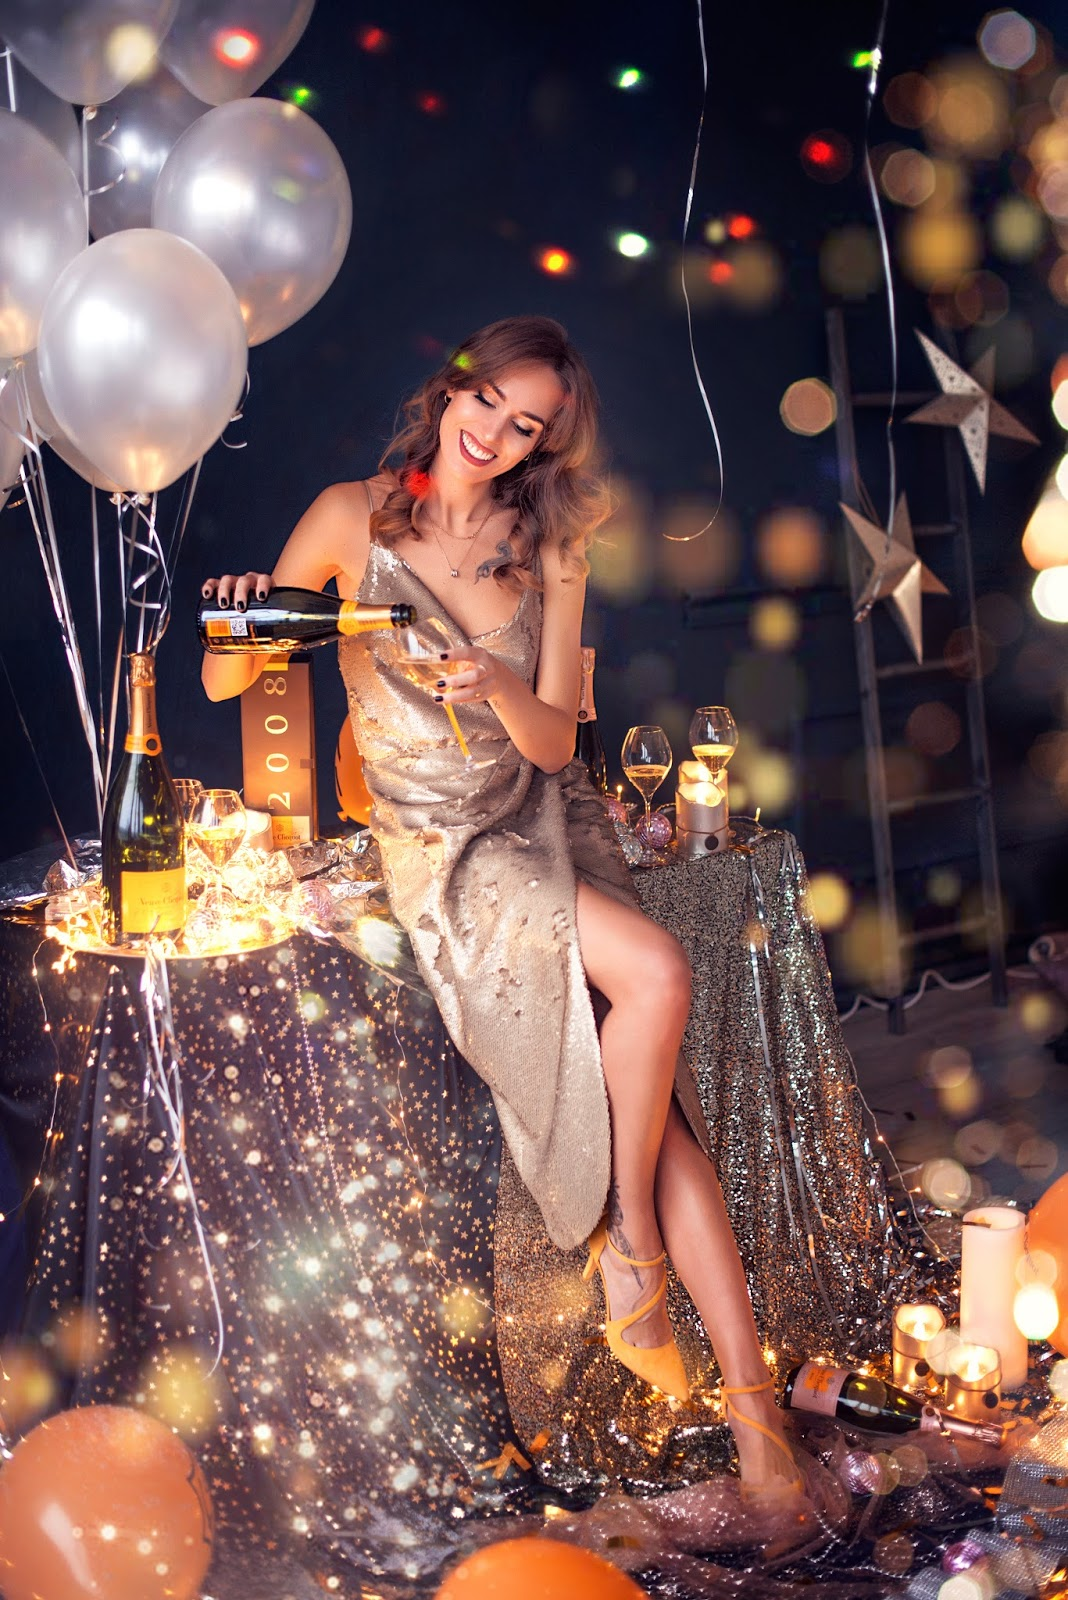 veuve clicquot champagne balloons confetti glitter party photography